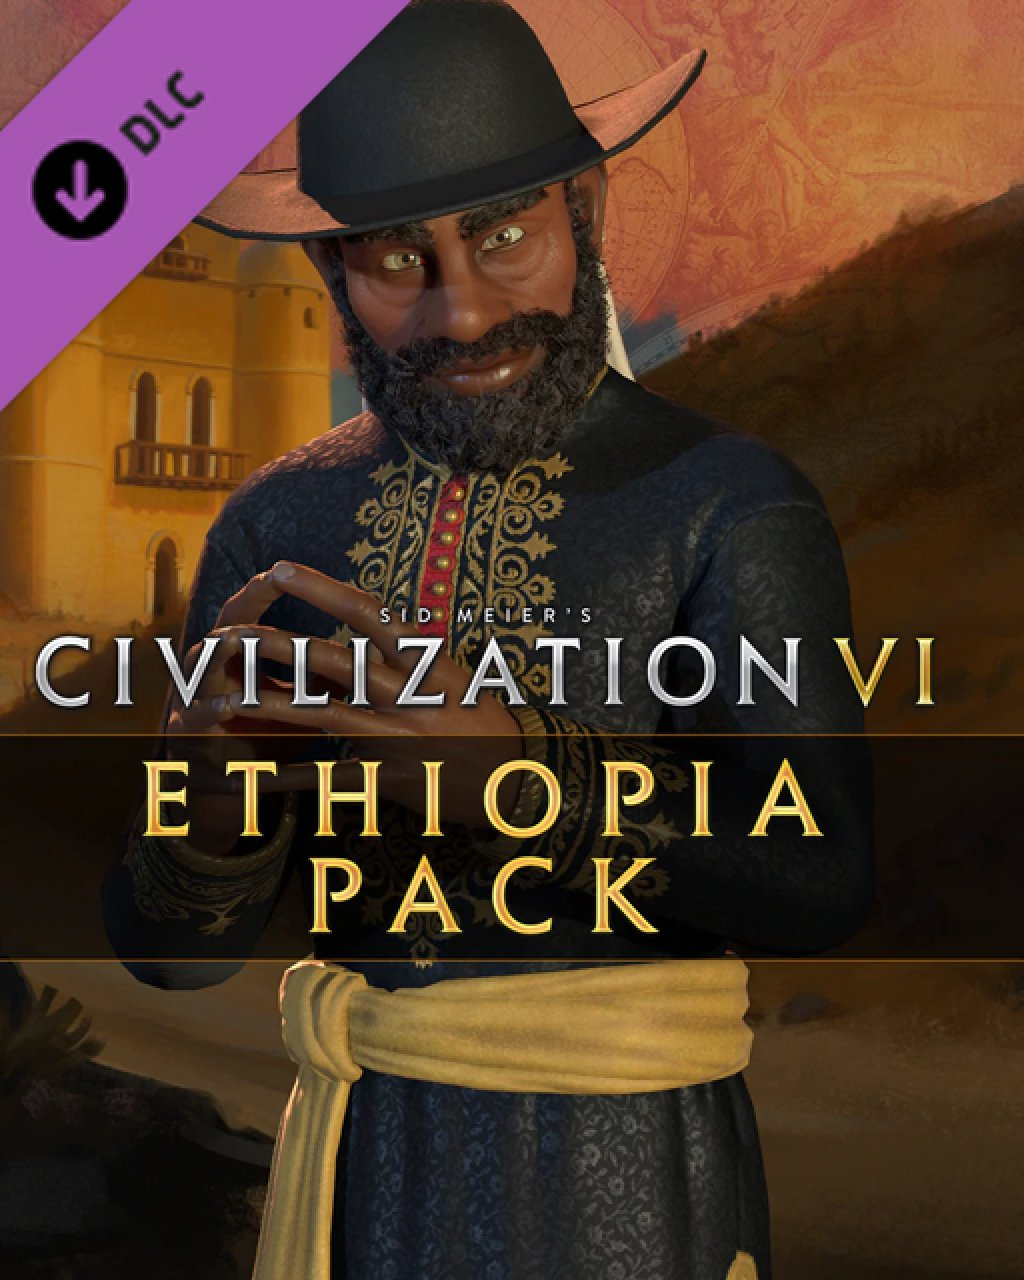 Civilization VI Ethiopia Pack